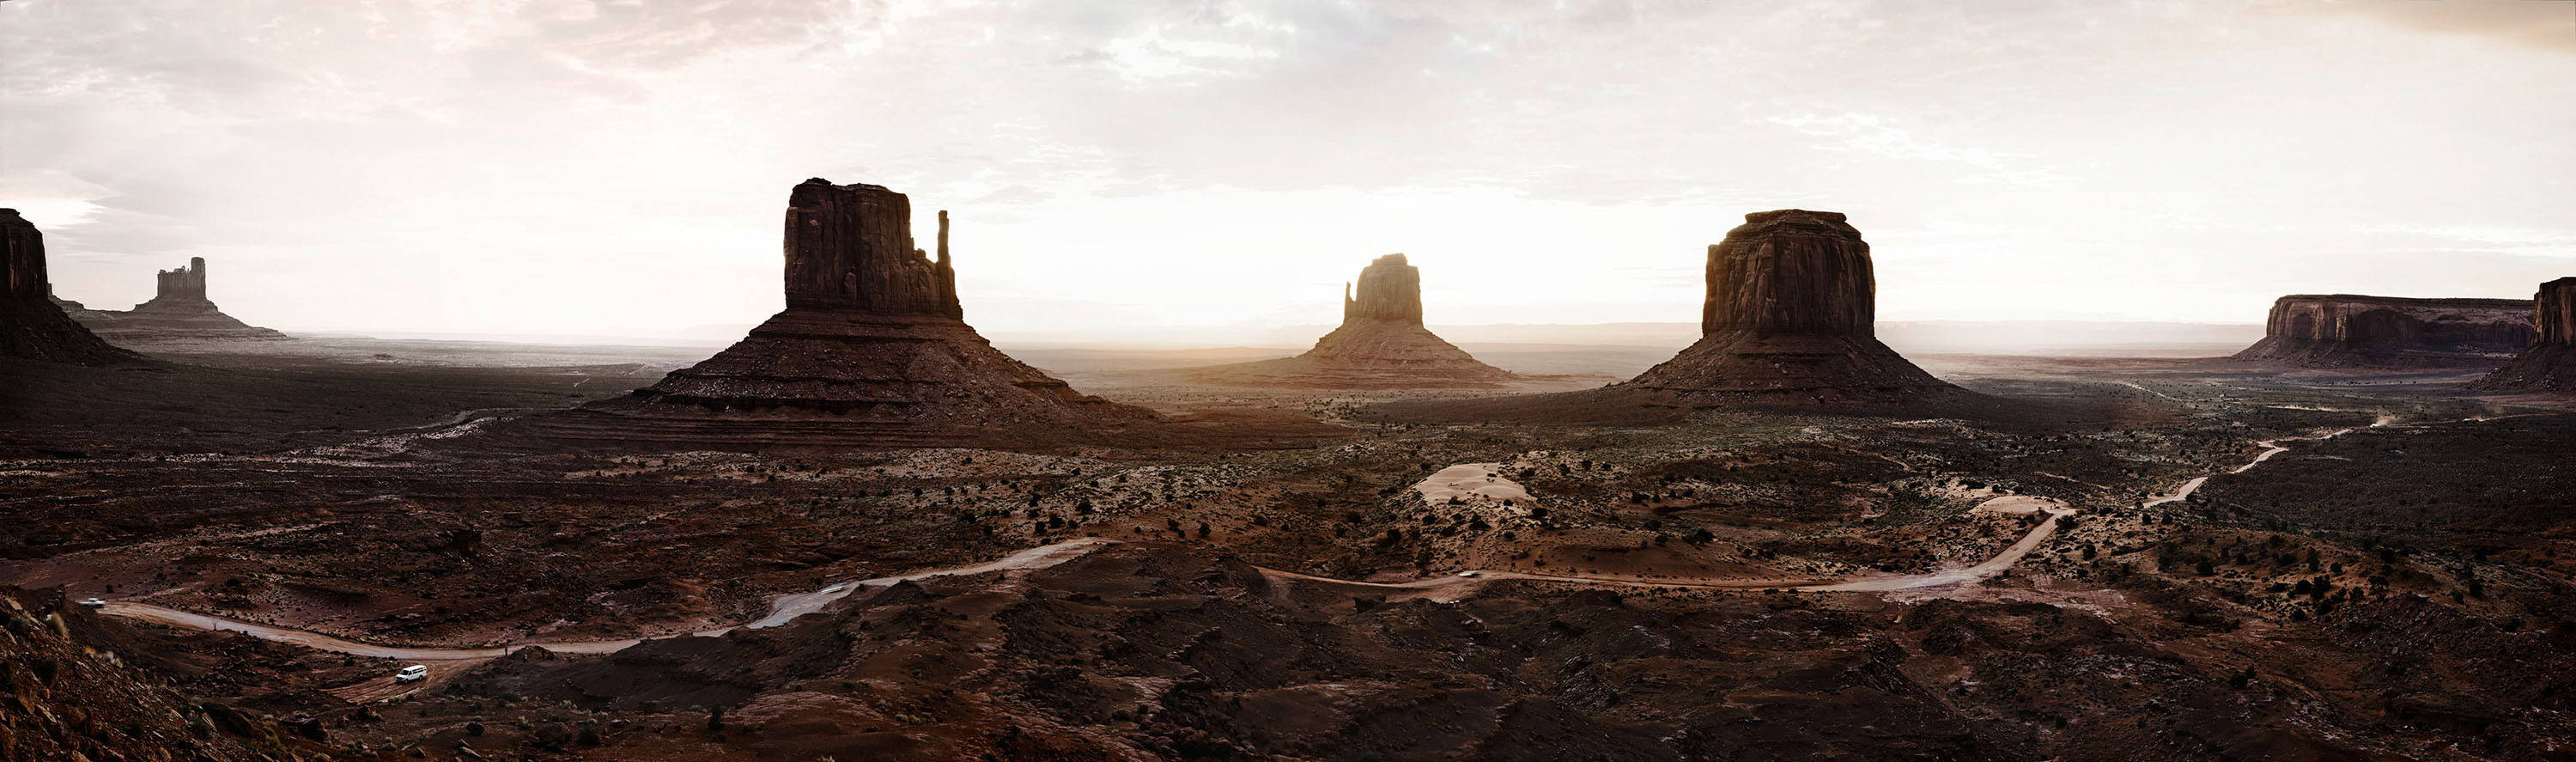 iworkcase on location in monument valley landscape photo